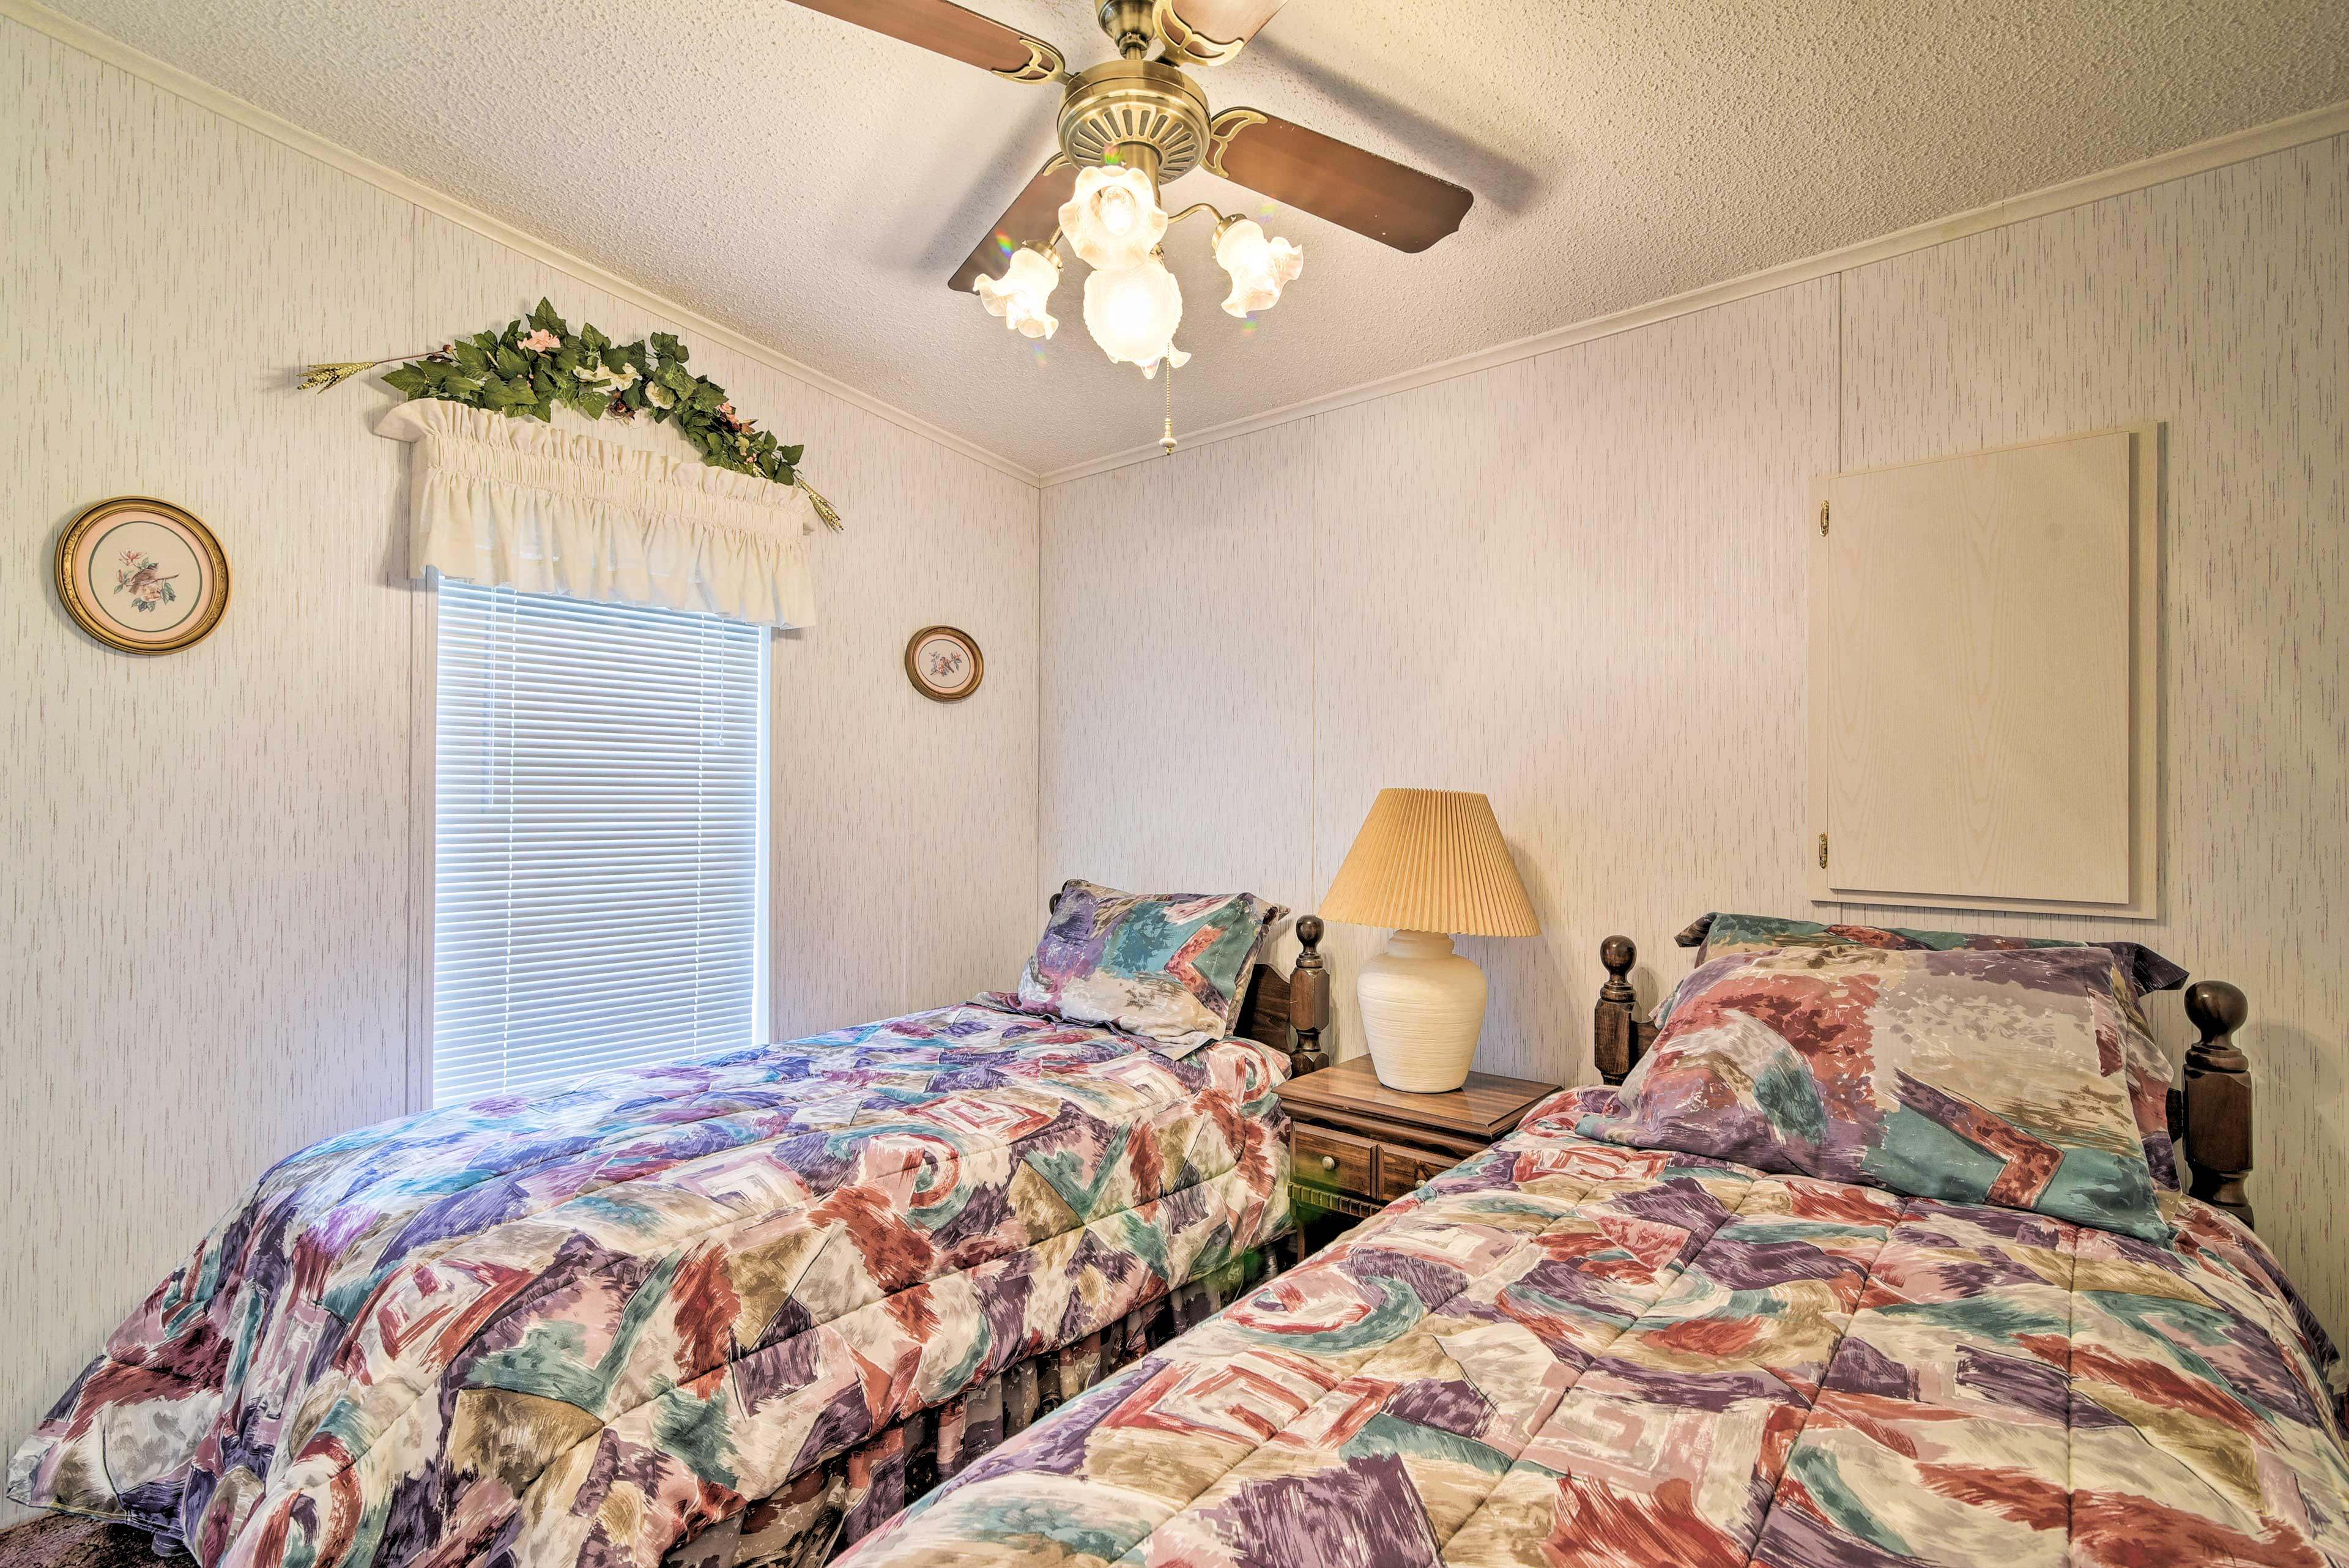 Two more guests can call these twin beds home.